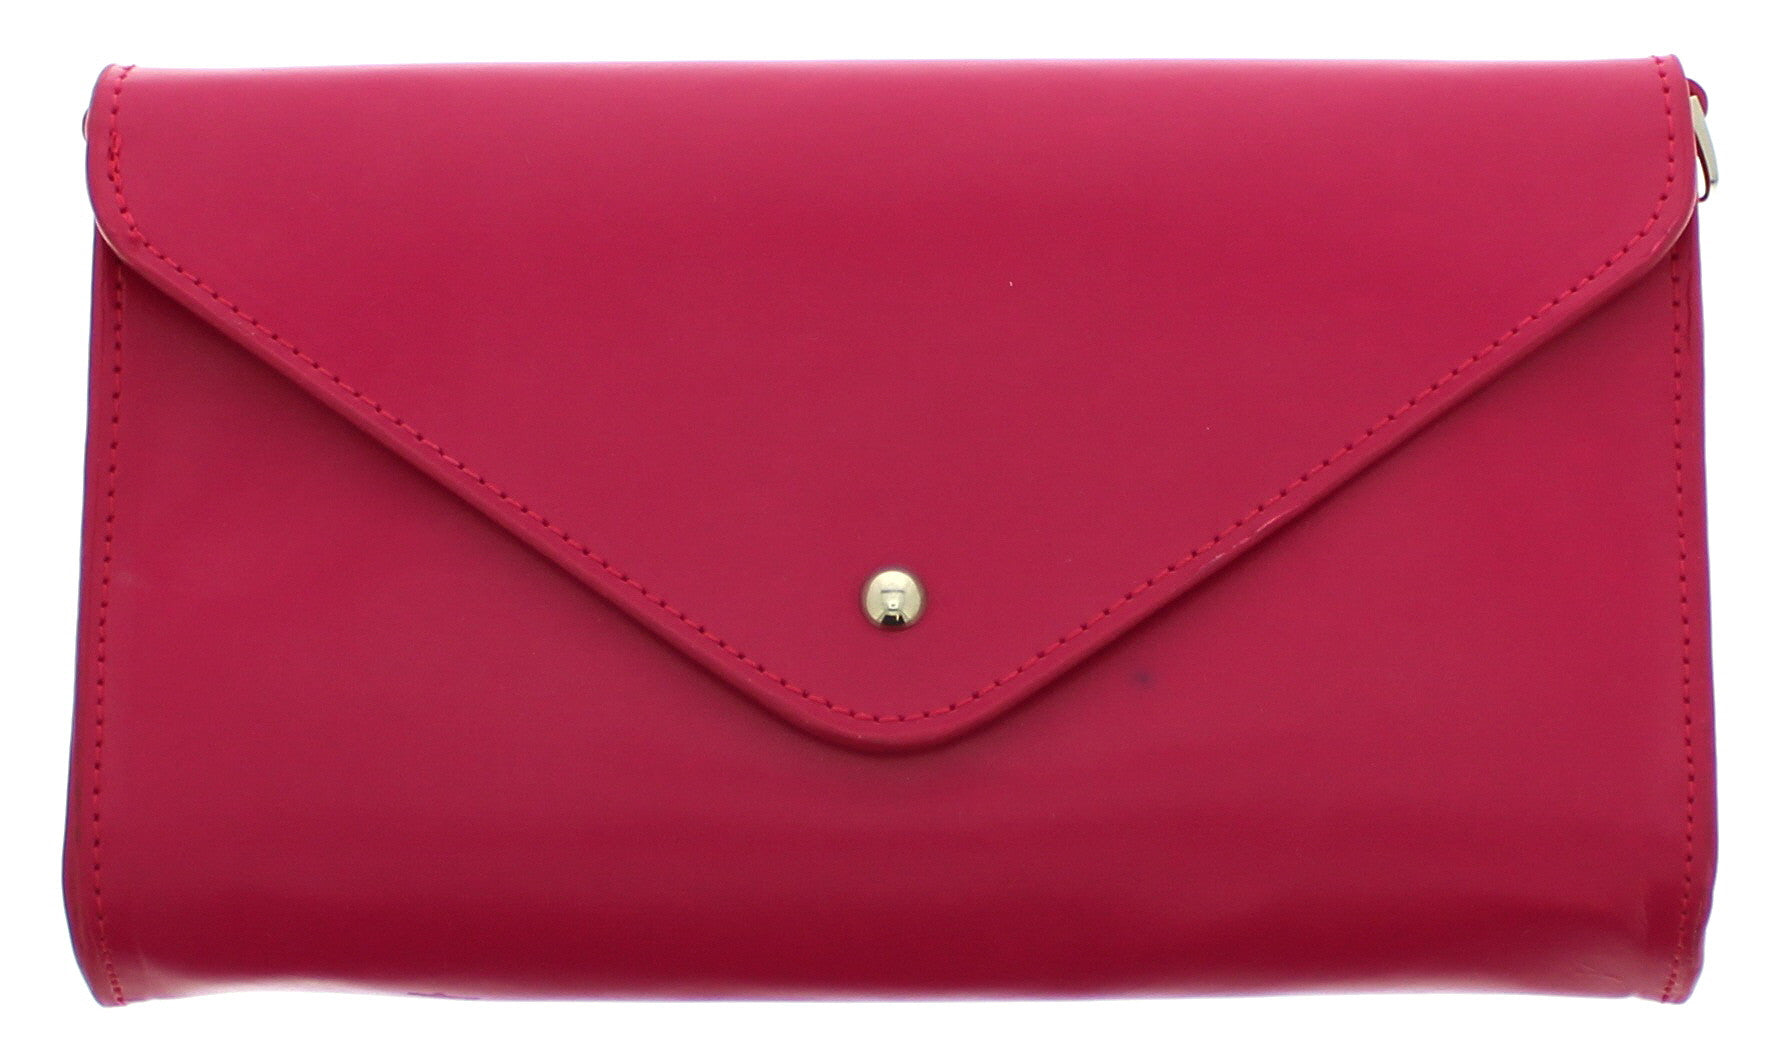 Mini Fuschia Envelope Bag